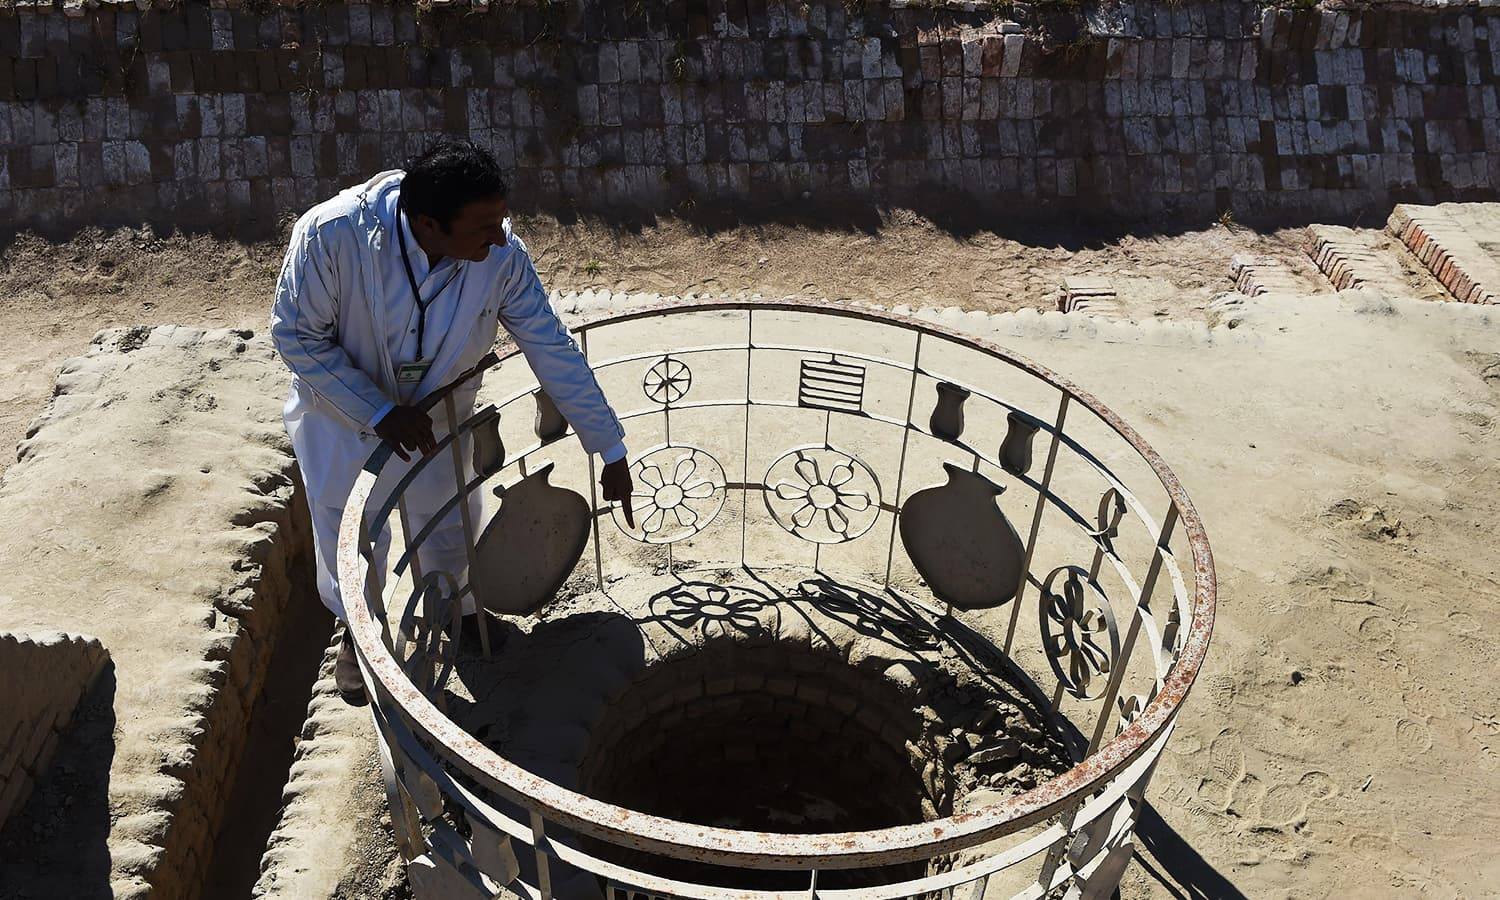 Caretaker at the UNESCO World Heritage archaeological site of Mohenjo Daro, Ismail Mugheri, points out a well at the site some 425km north of Karachi. — AFP